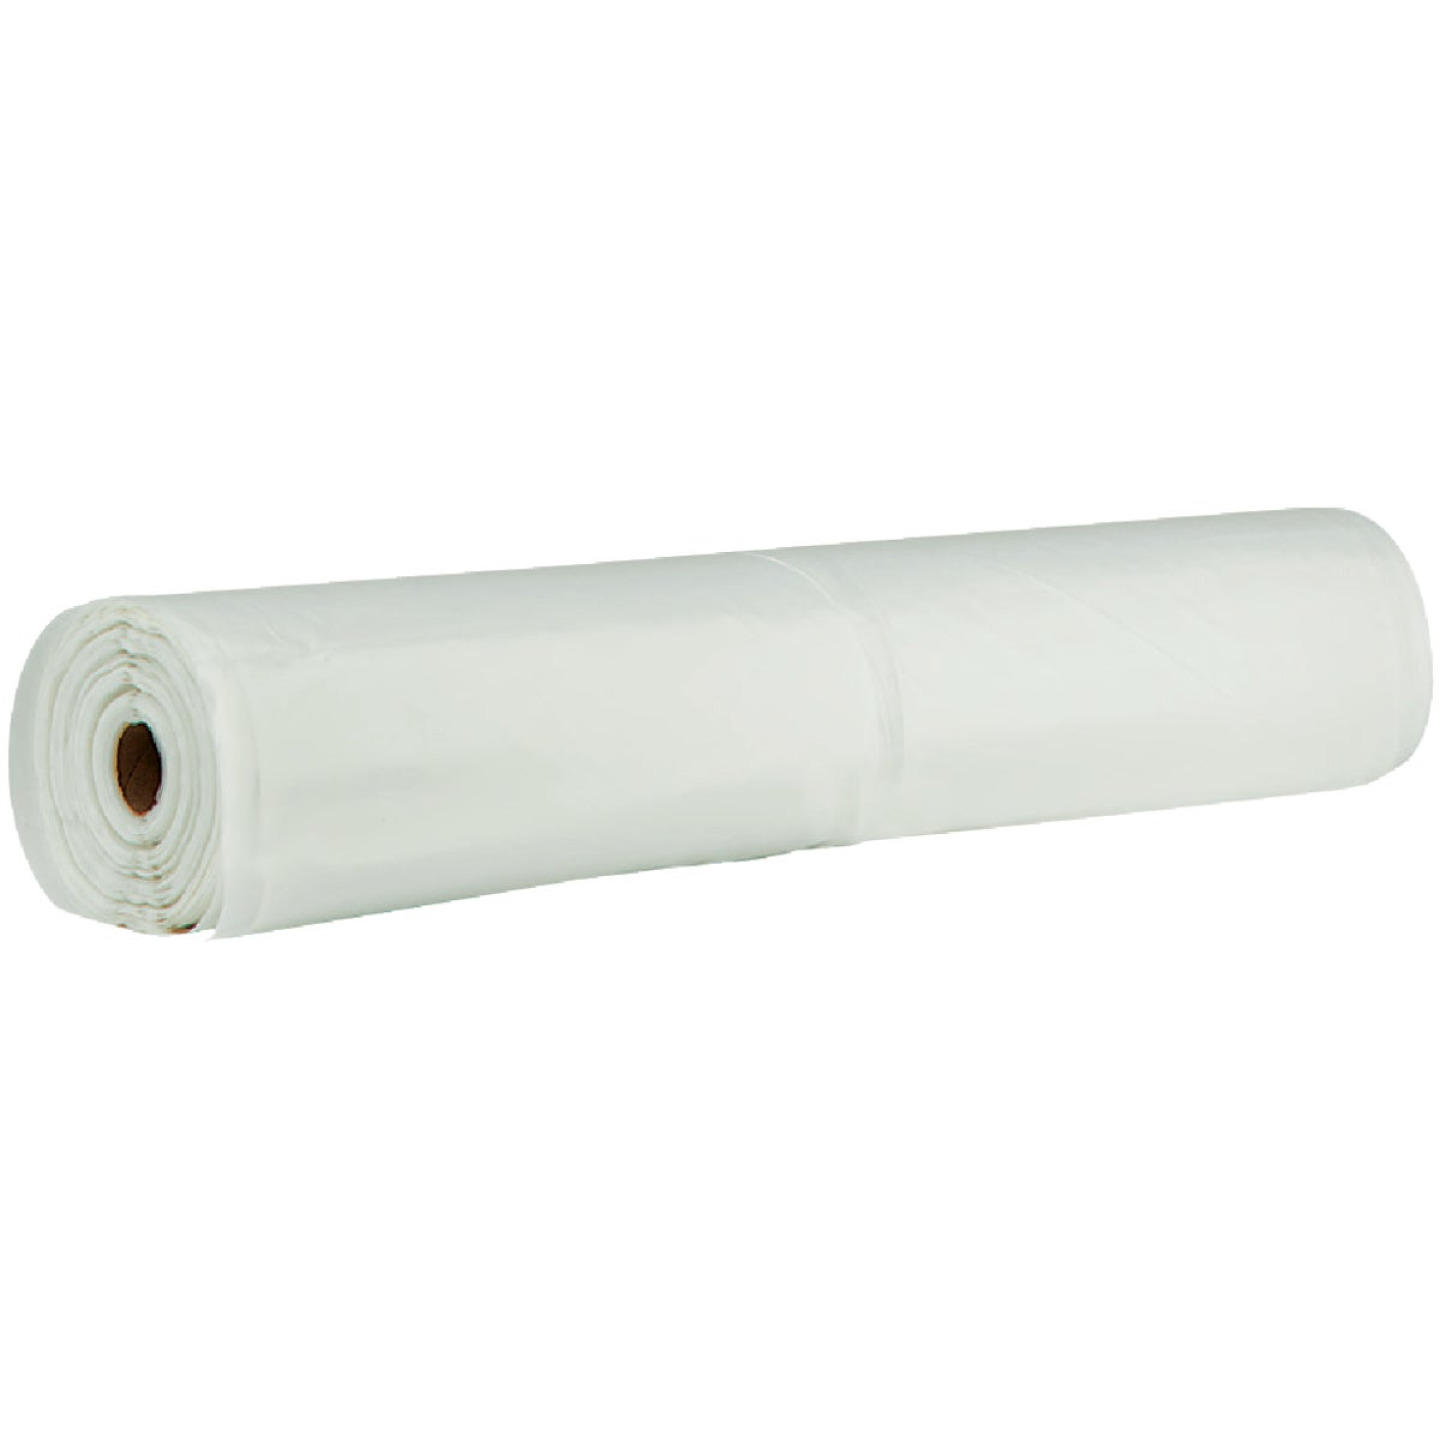 Film-Gard 10 Ft. x 100 Ft. Clear 6 Mil. Polyethylene Sheeting Image 1